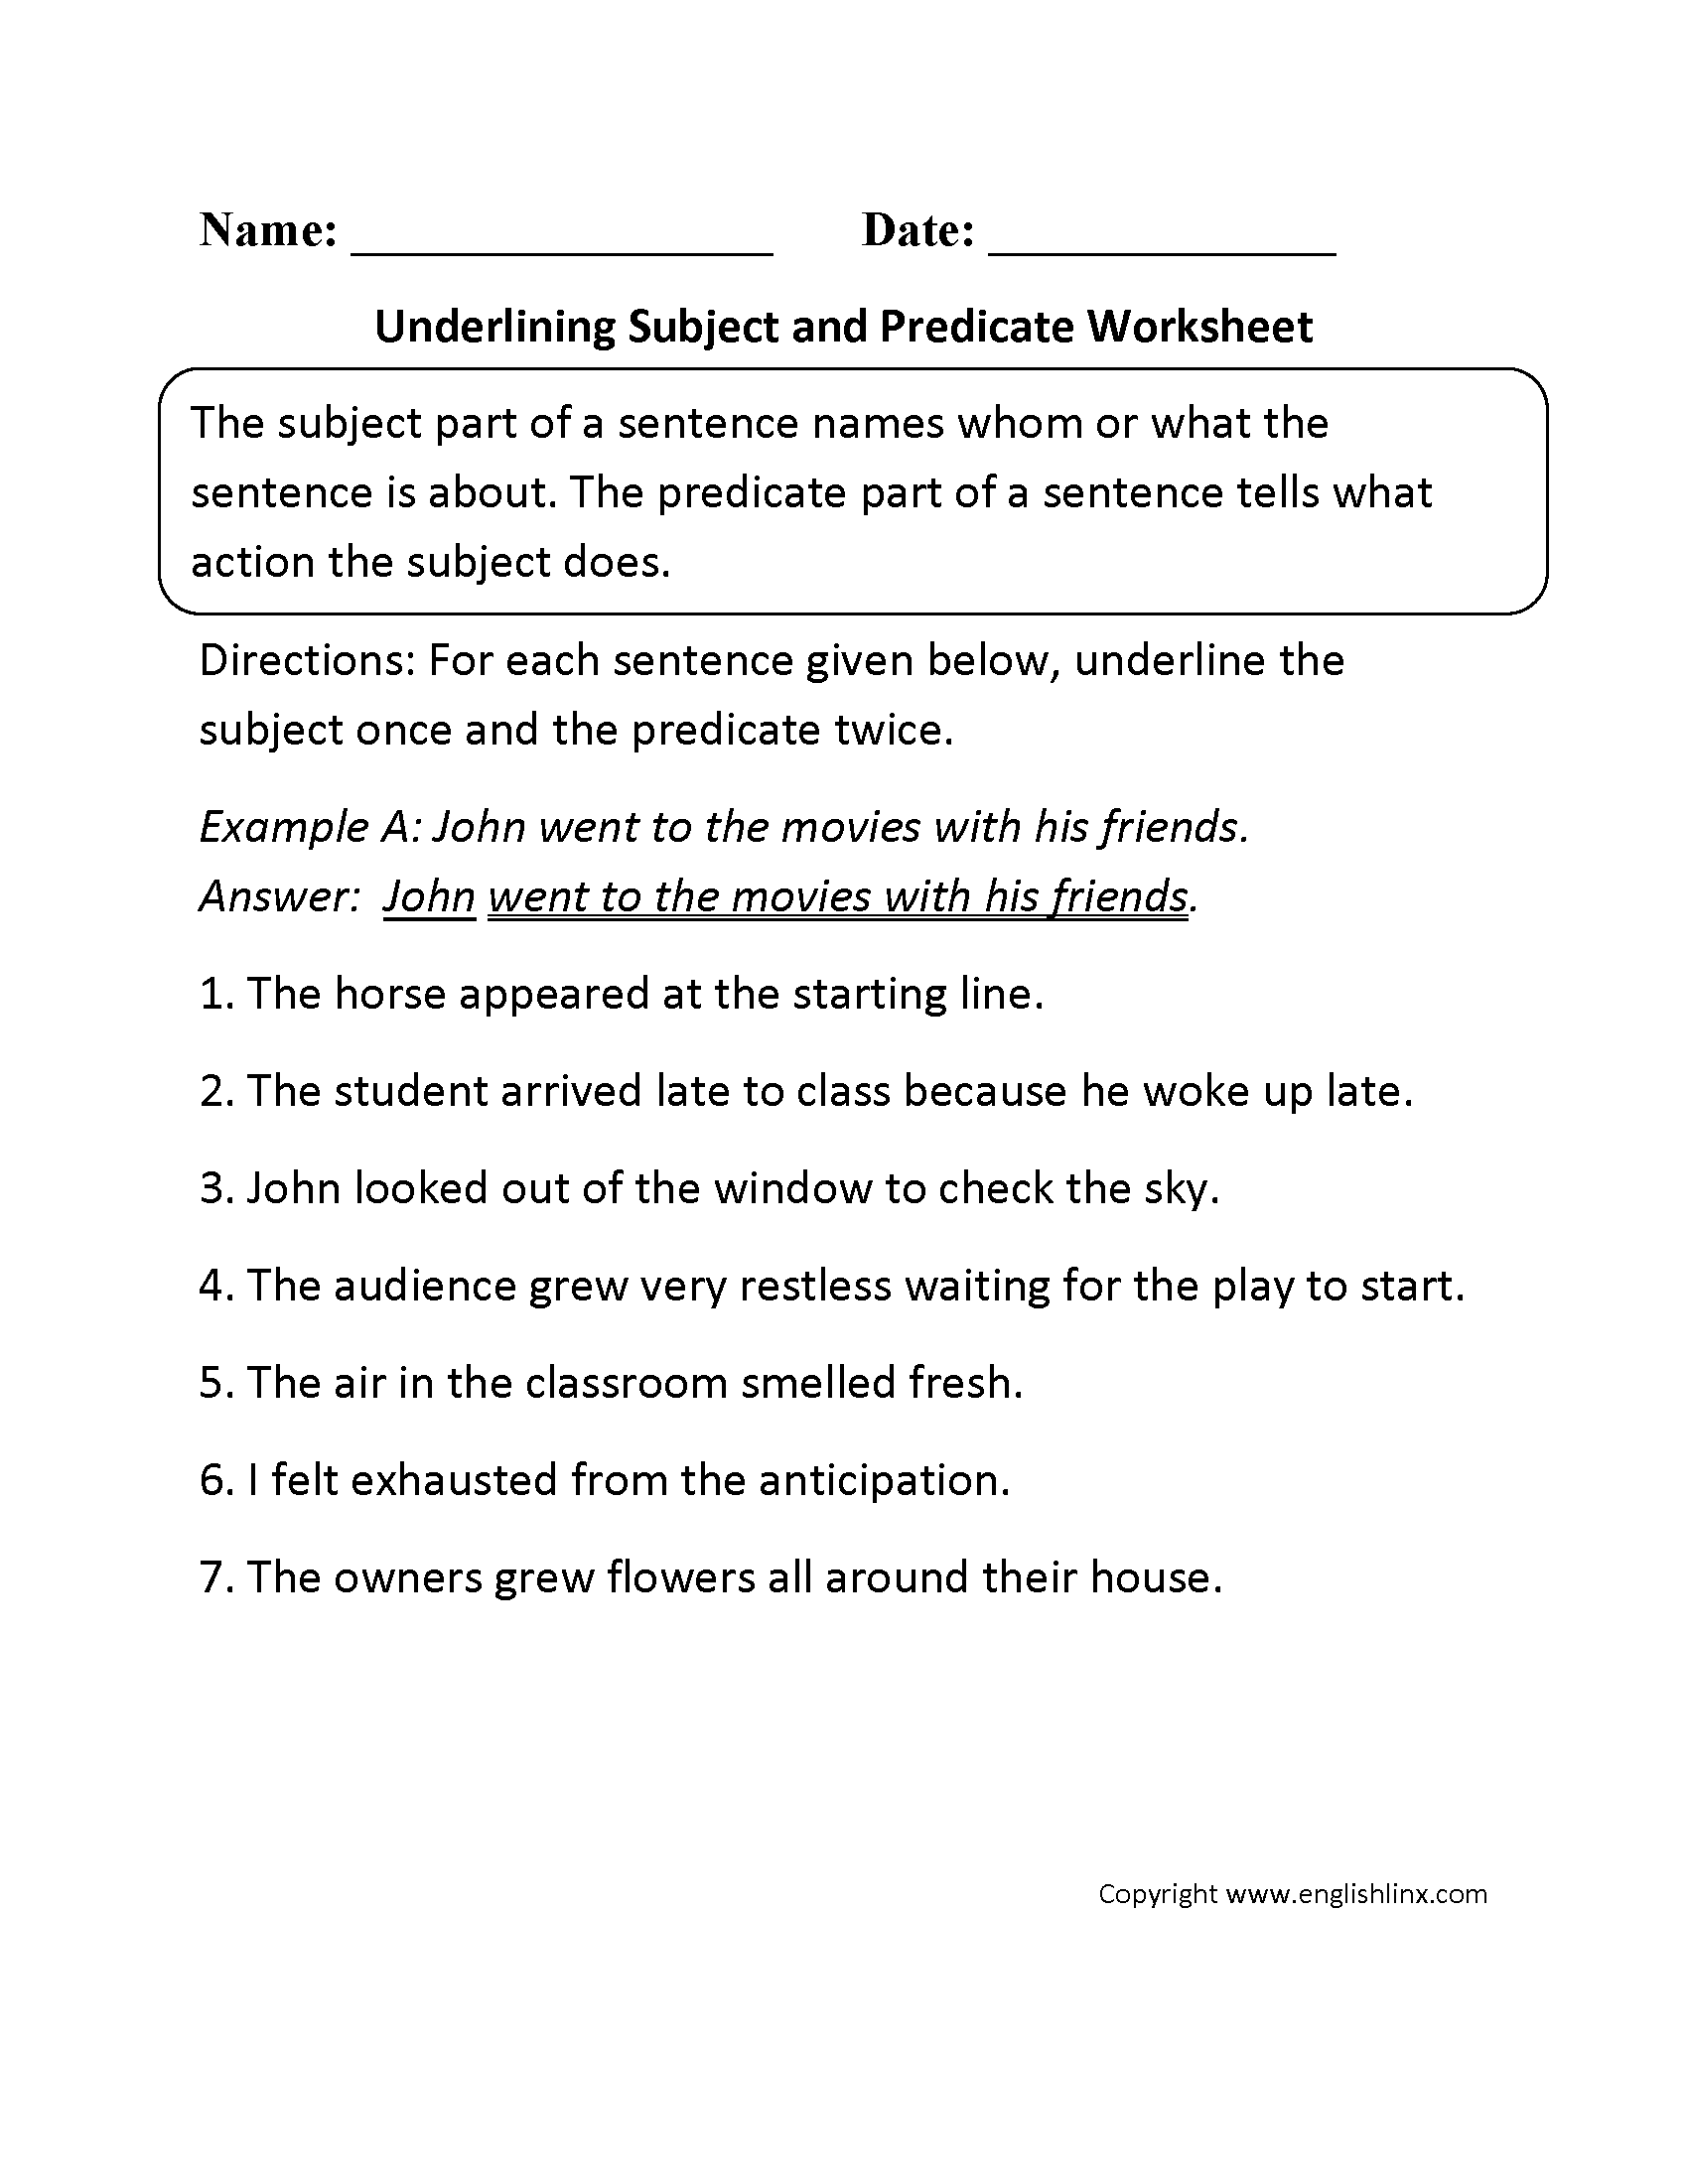 Printables 3rd Grade Subject And Predicate Worksheets parts of a sentence worksheets subject and predicate underlining or worksheet